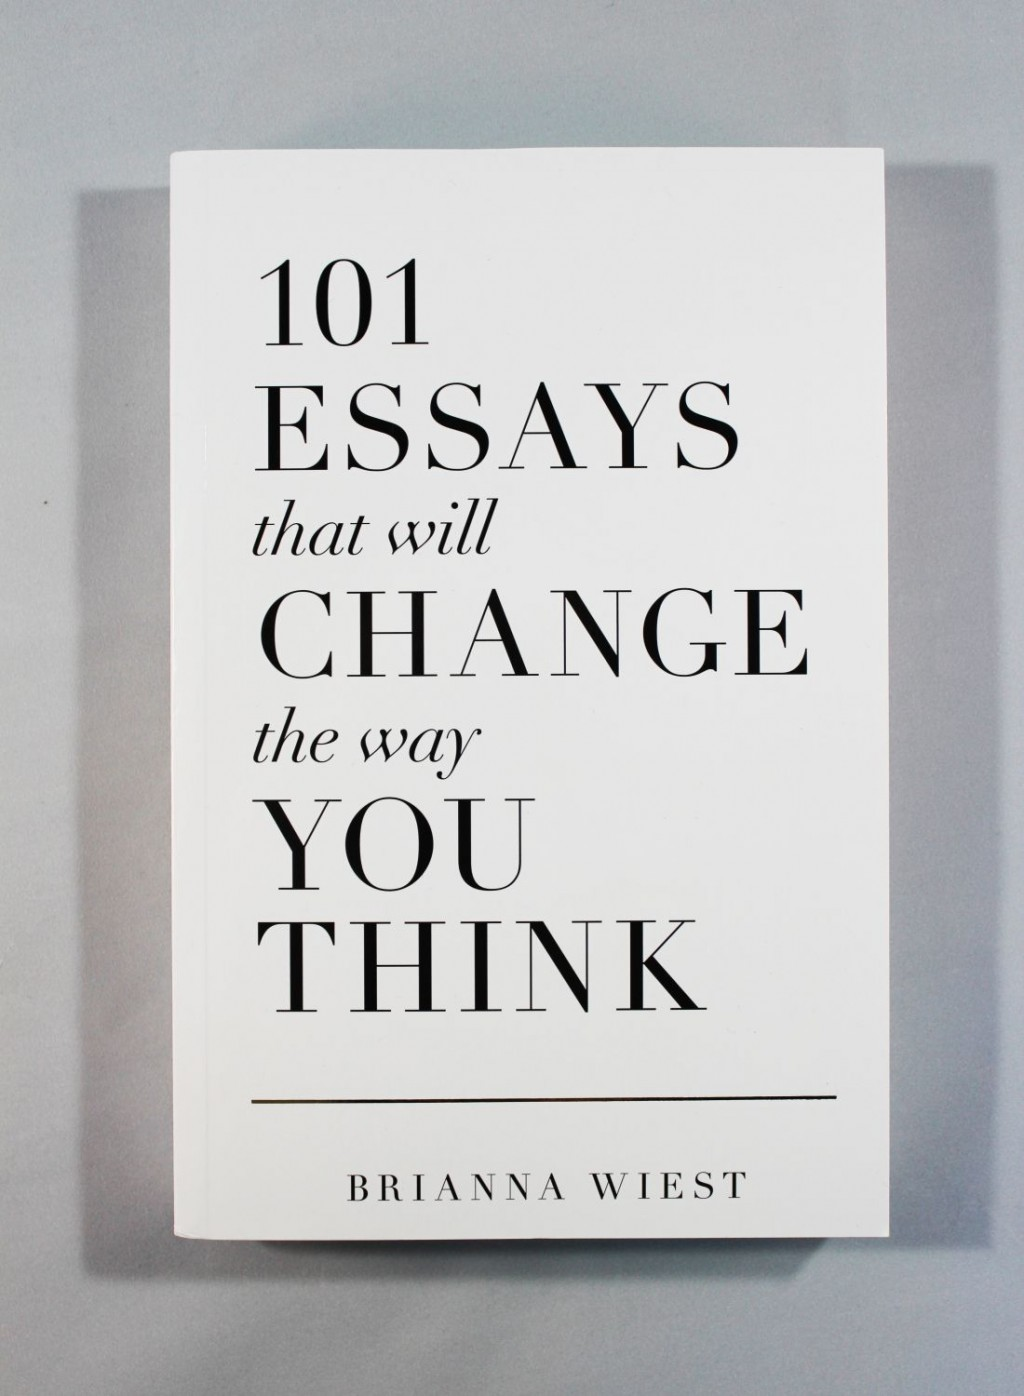 007 Essay Example Essays That Will Change The Way You Think Unusual 101 Book Depository Barnes And Noble Review Large